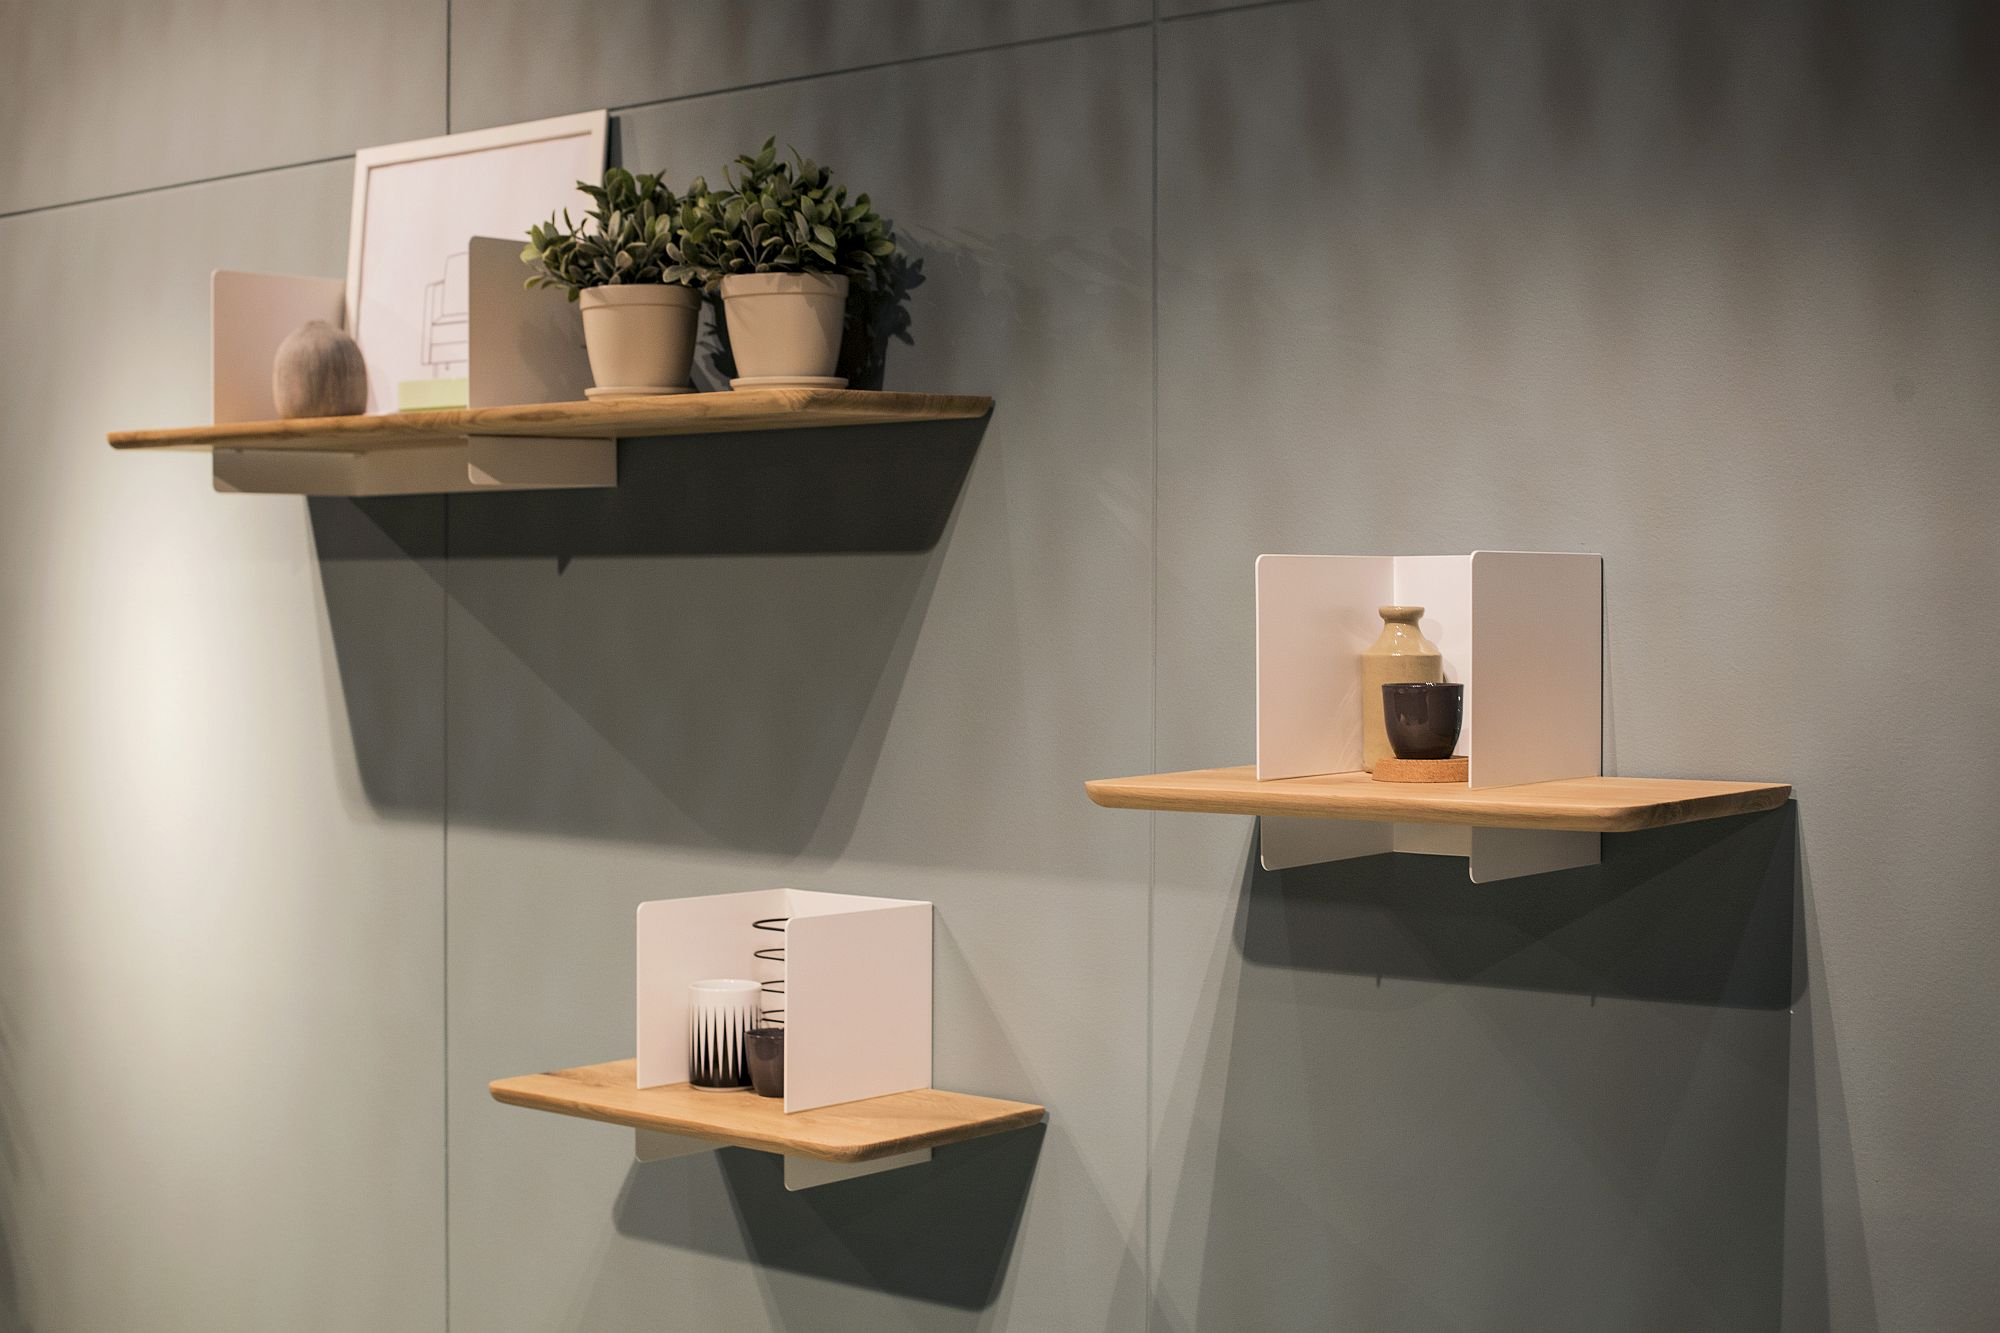 Innovative floating shelves in wood with an open white box